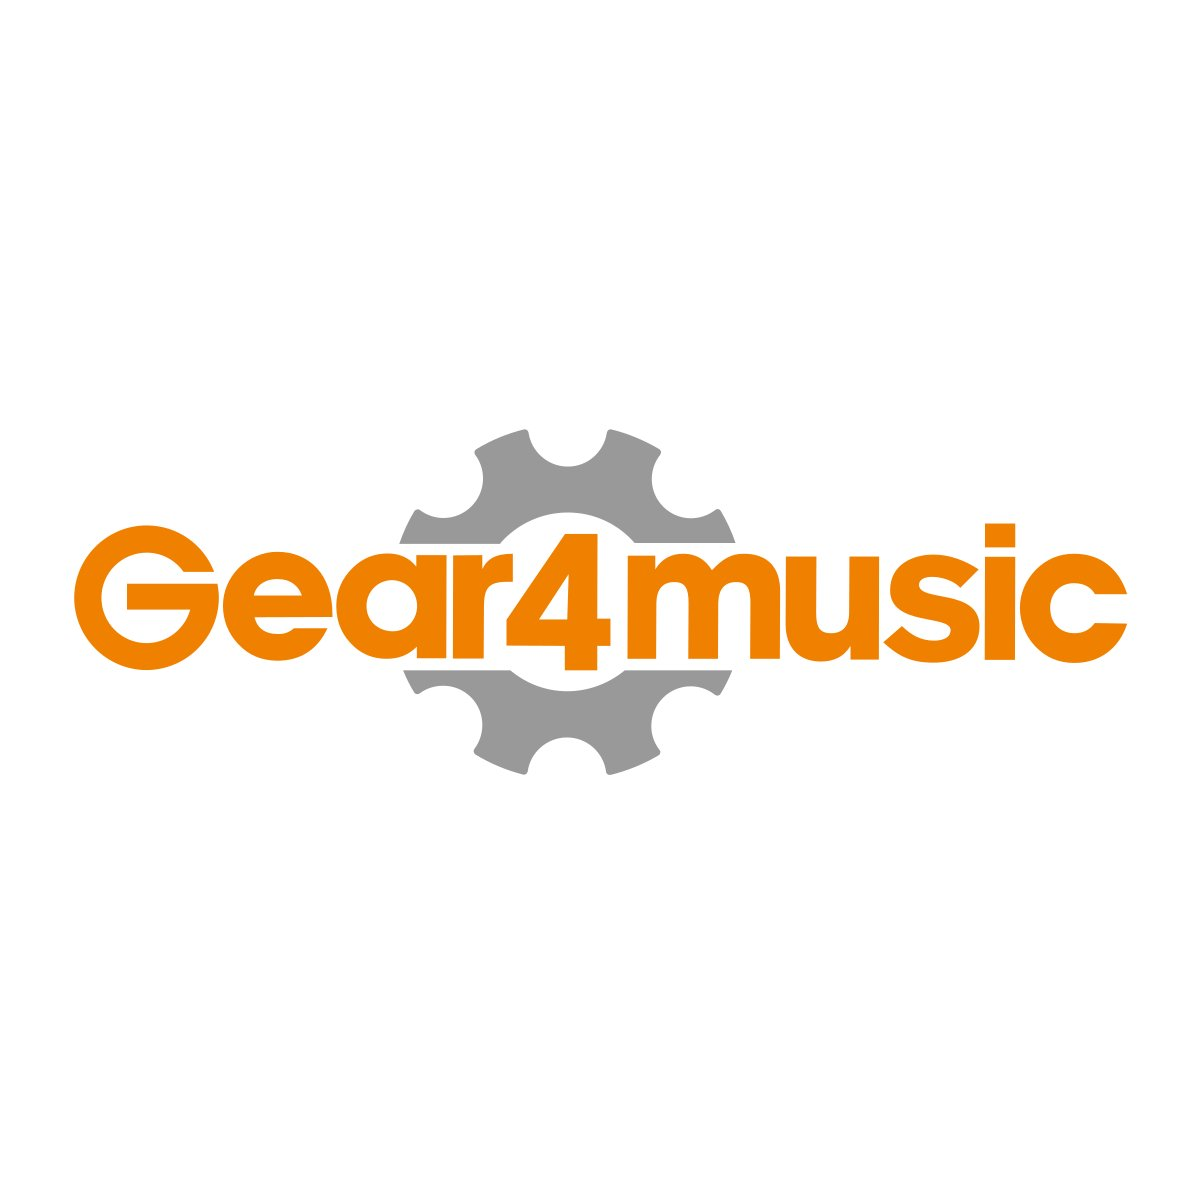 Flauto Traverso per Studenti con Custodia Gear4music